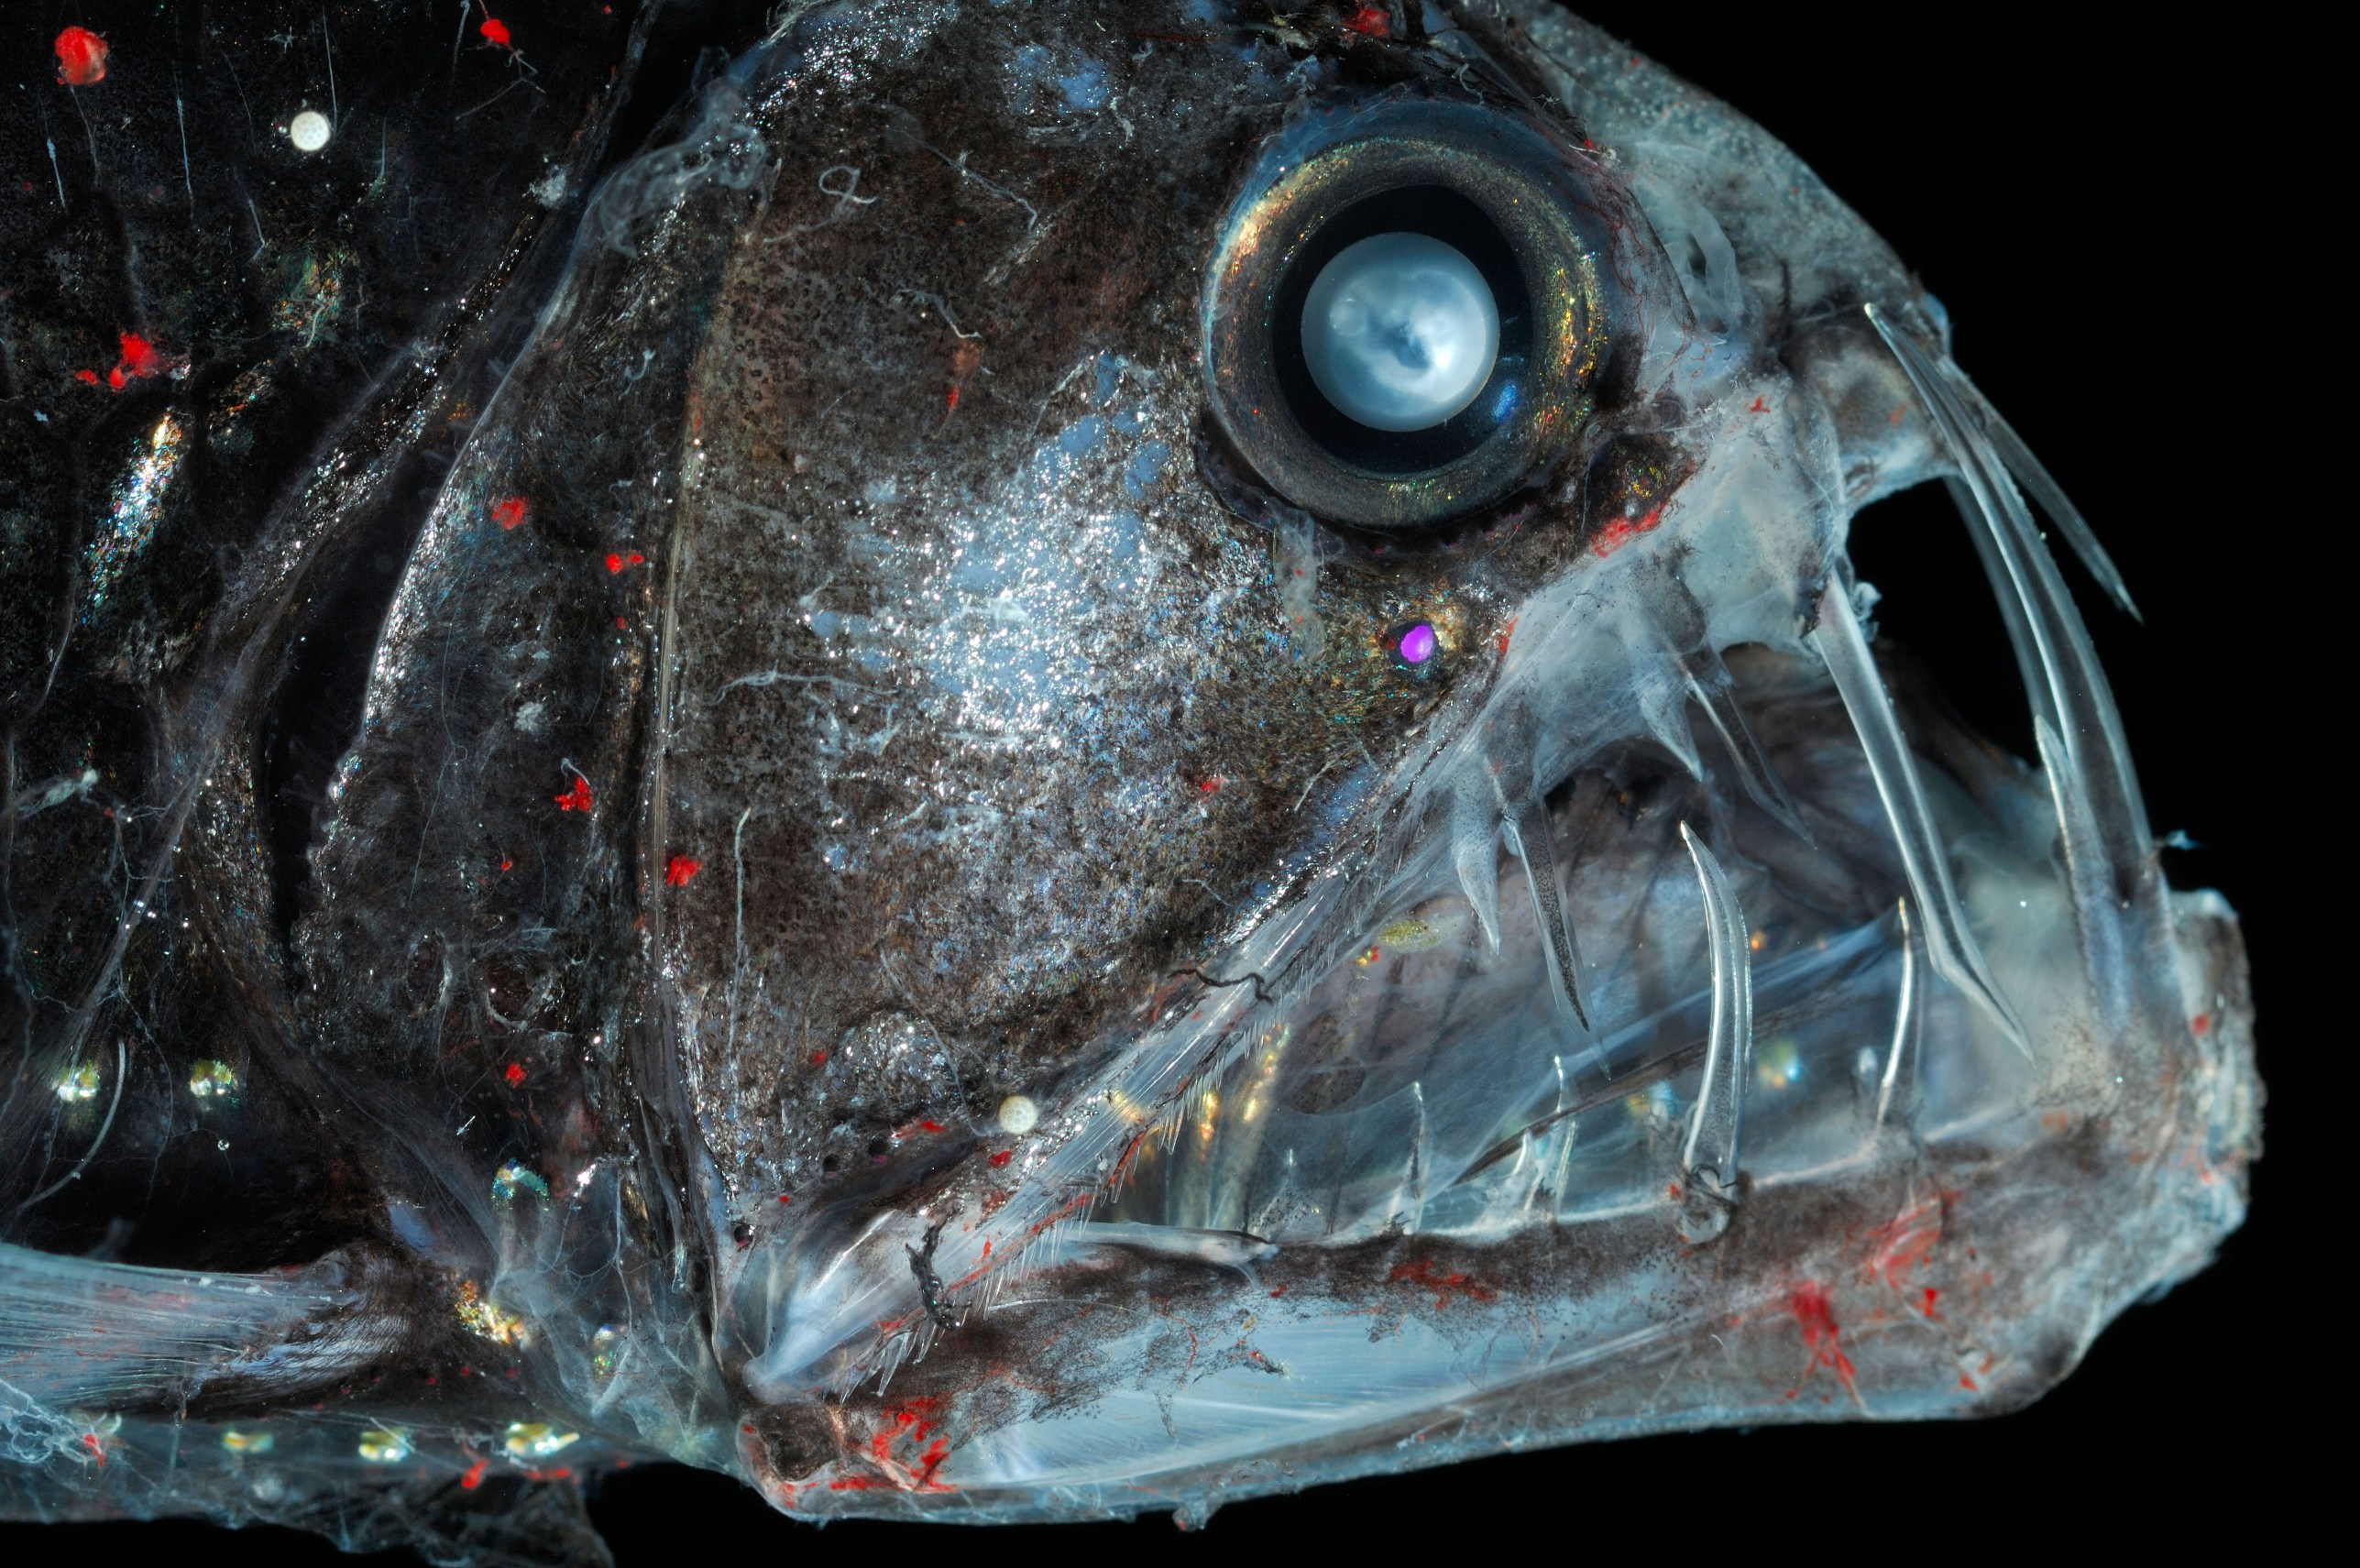 Viperfish head wallpaper